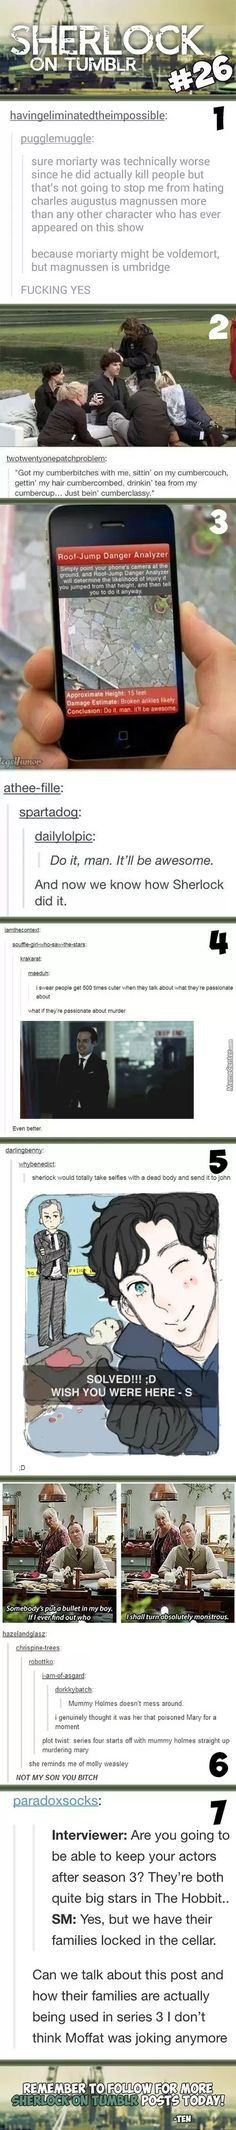 Sherlock On Tumblr #26